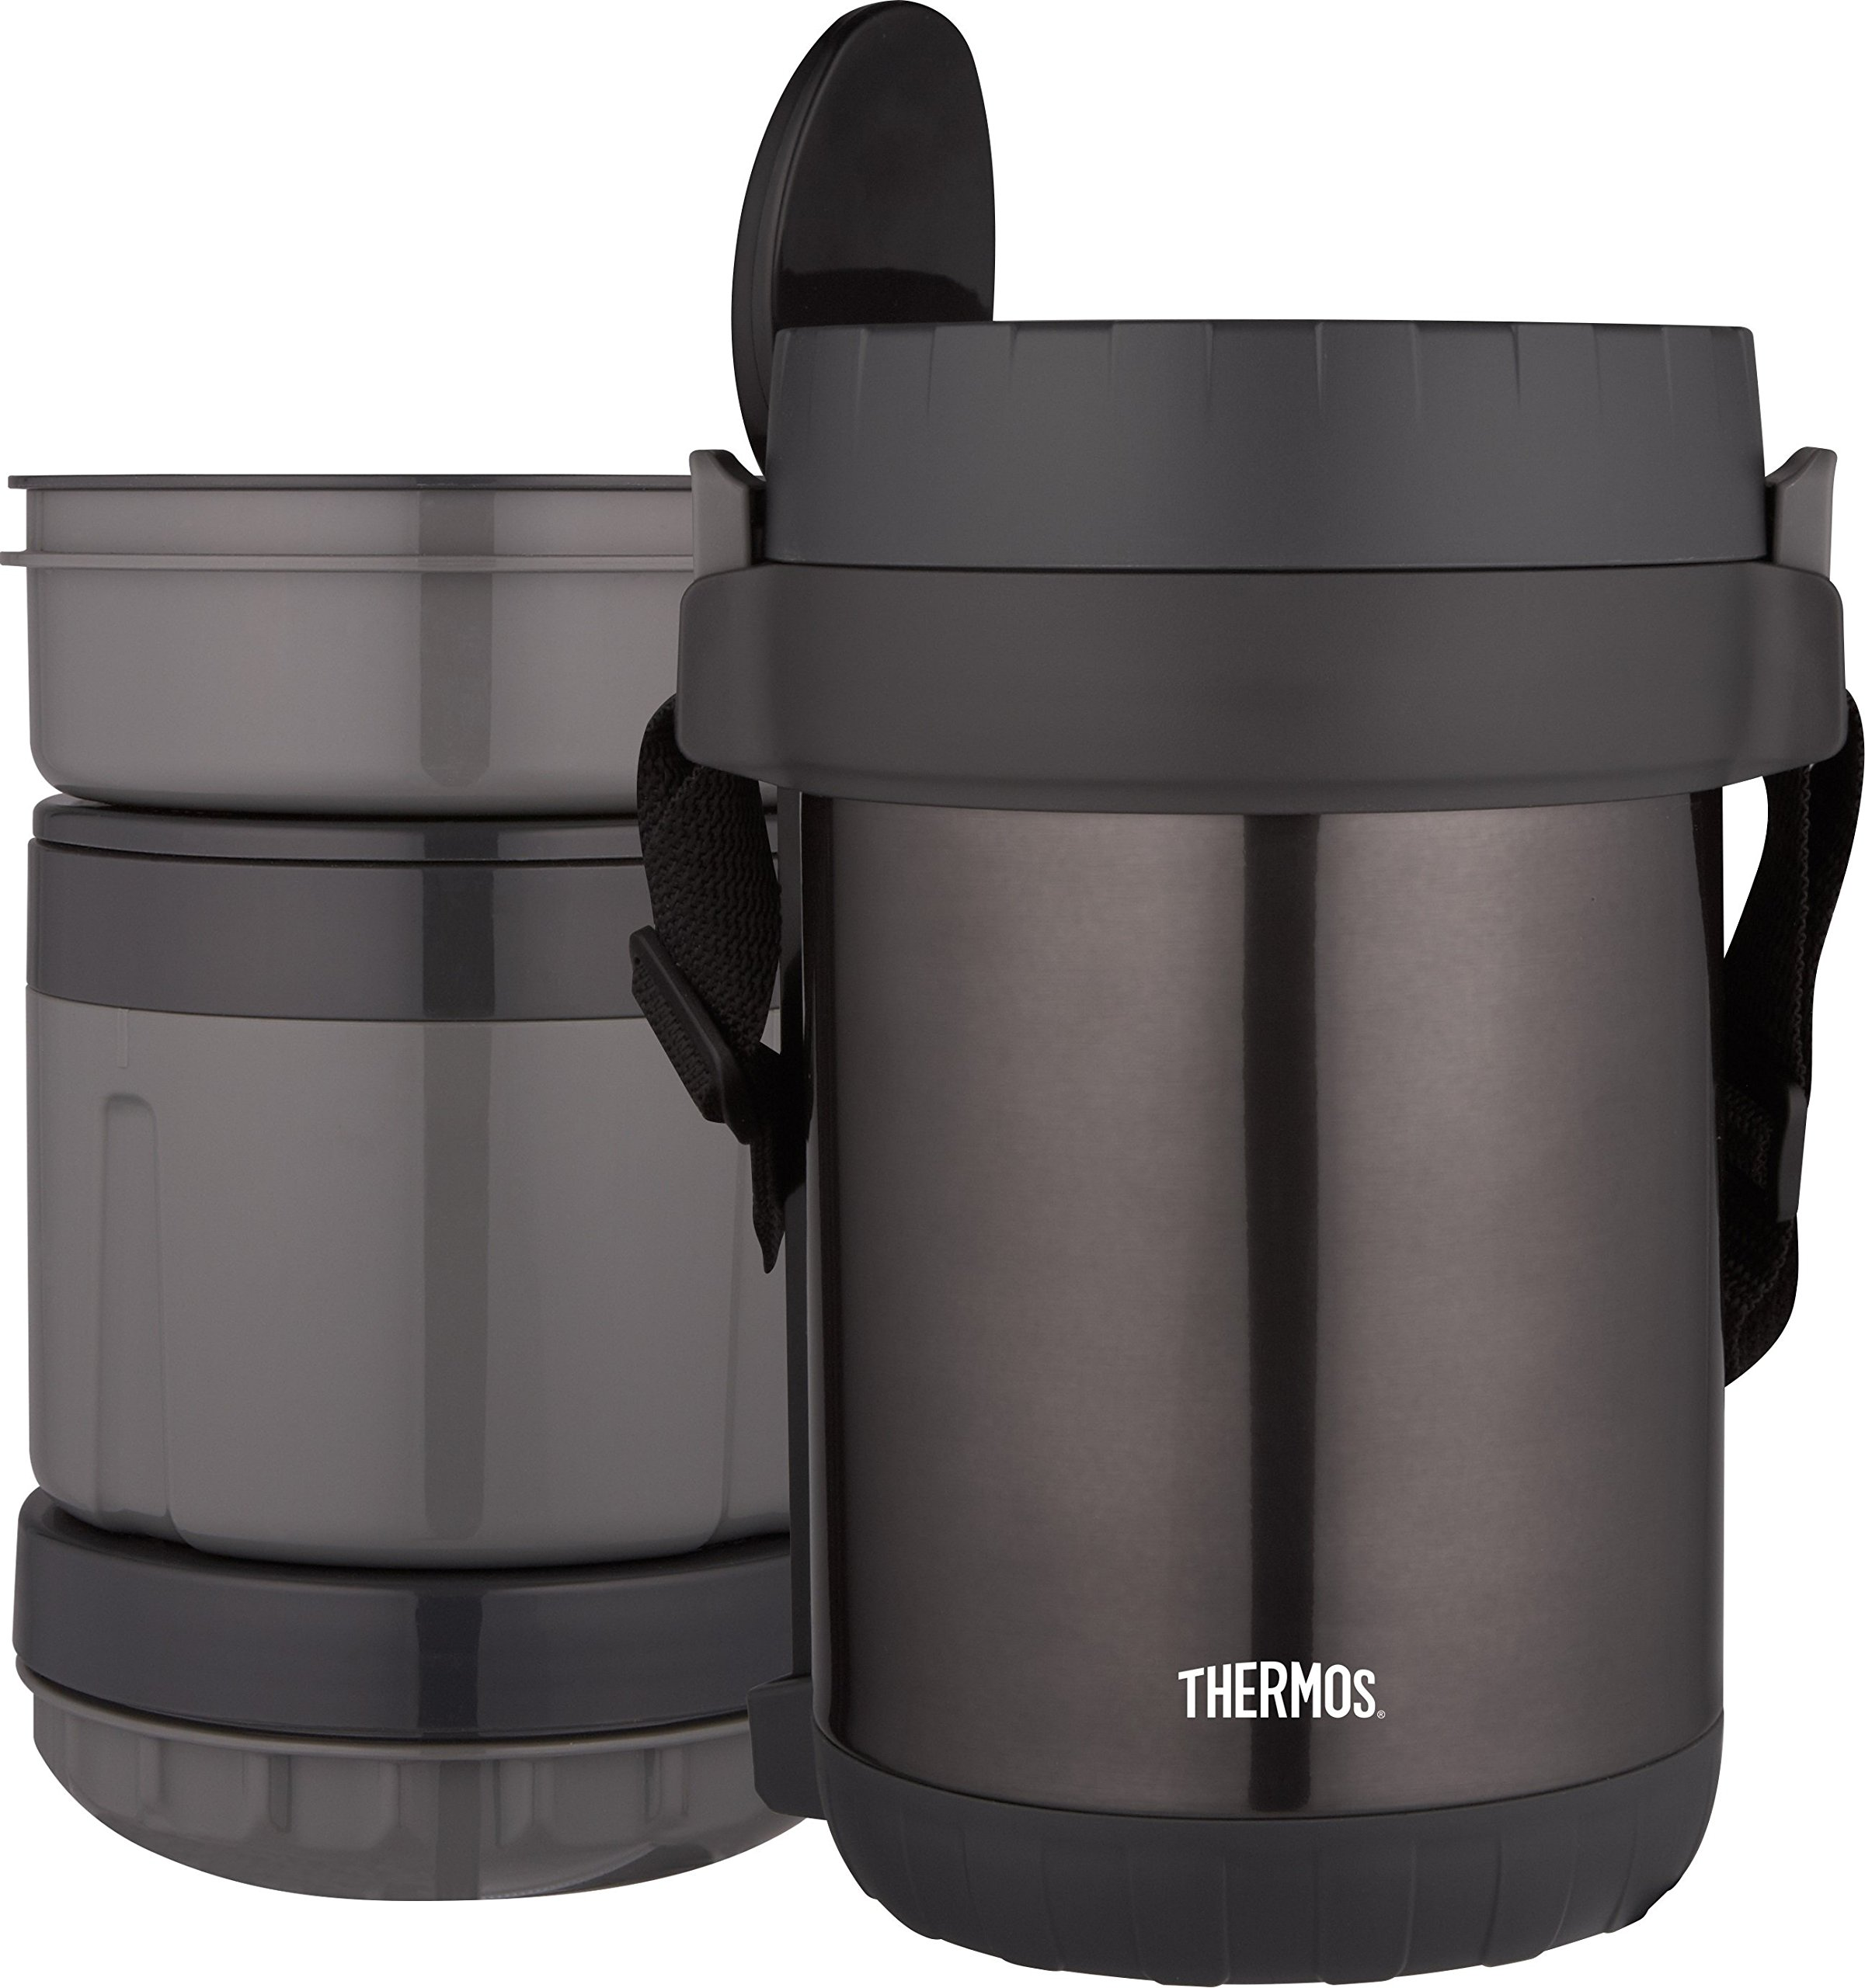 thermos all in one vacuum insulated stainless steel meal. Black Bedroom Furniture Sets. Home Design Ideas